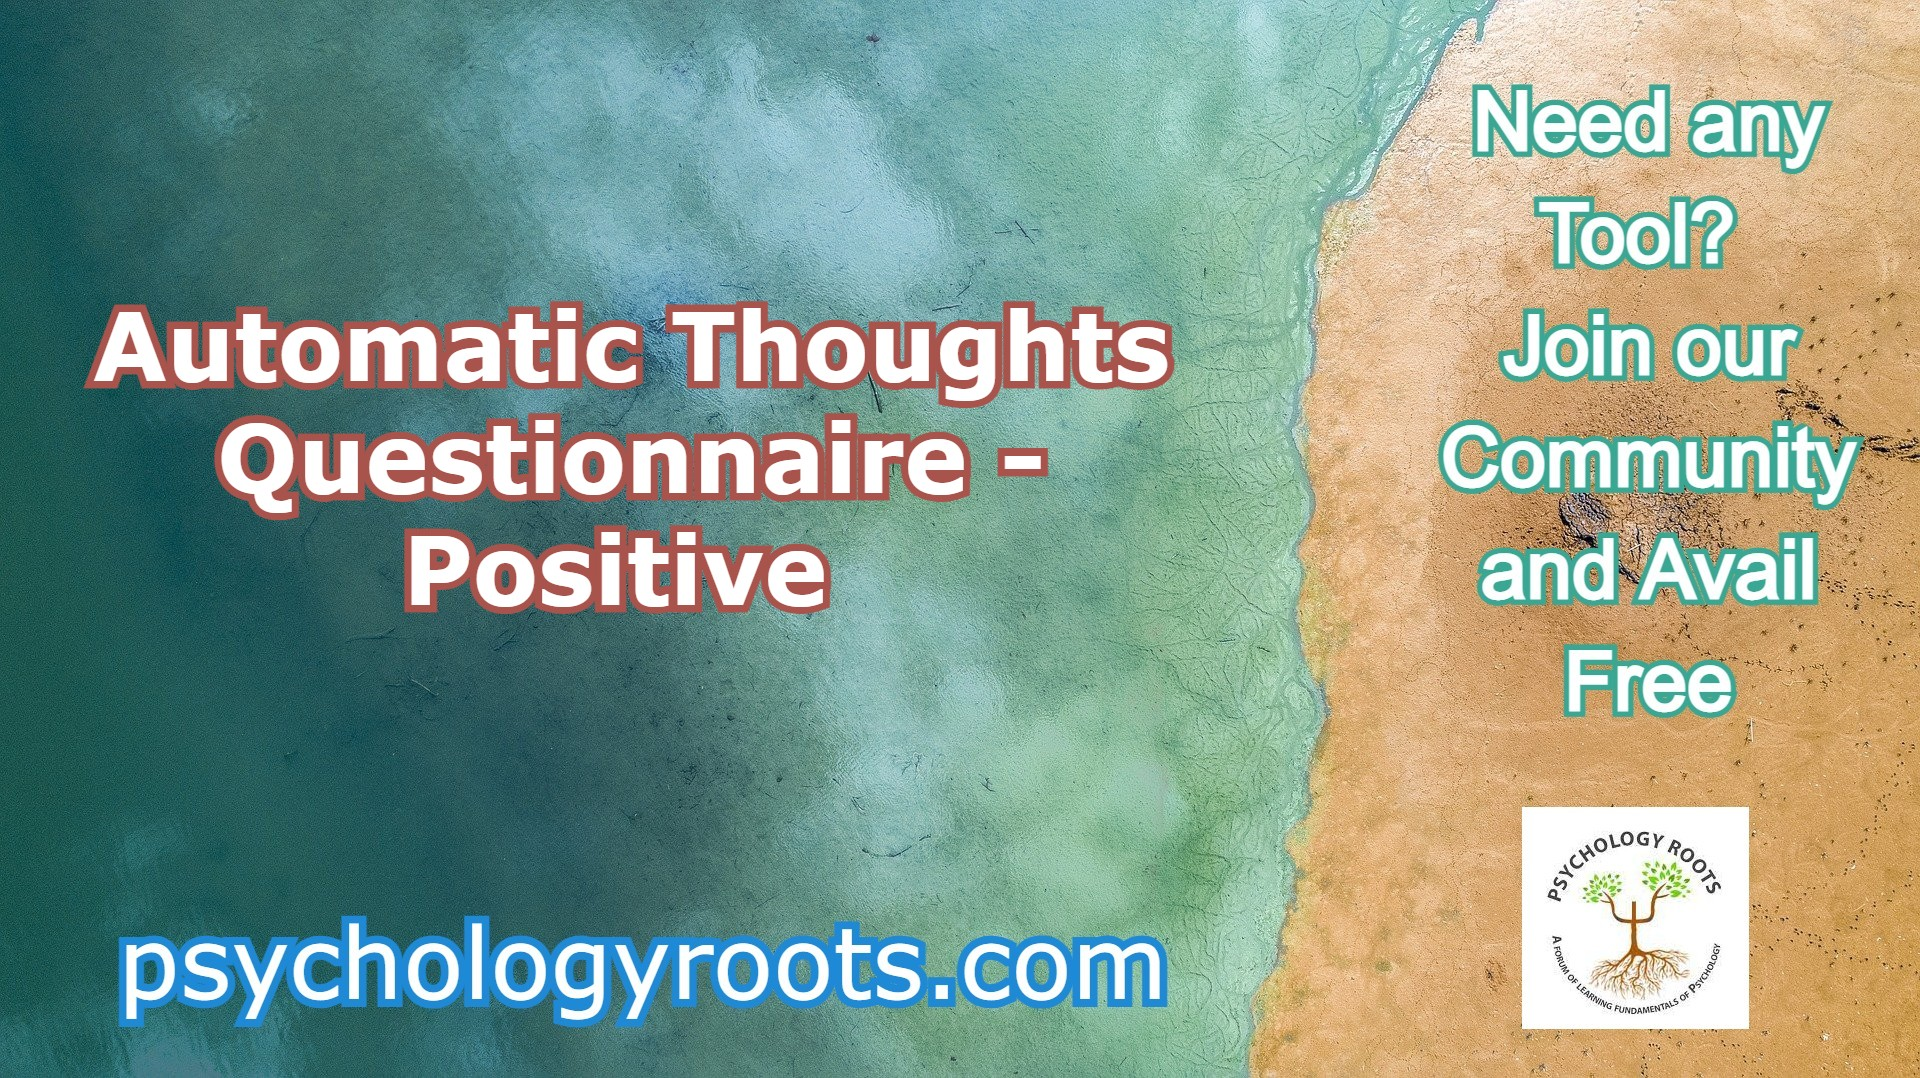 Automatic Thoughts Questionnaire - Positive